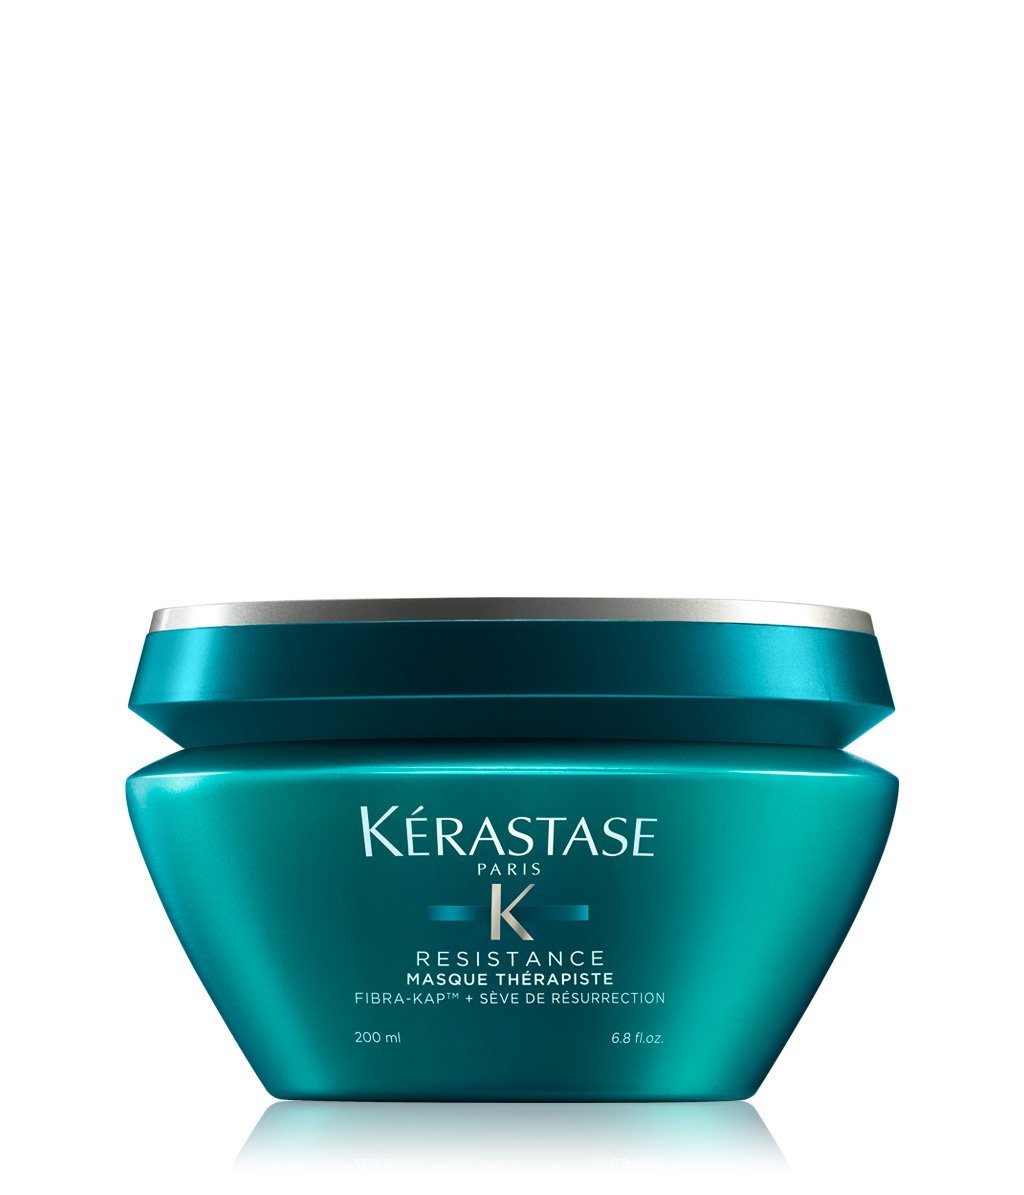 how to use kerastase resistance masque therapiste